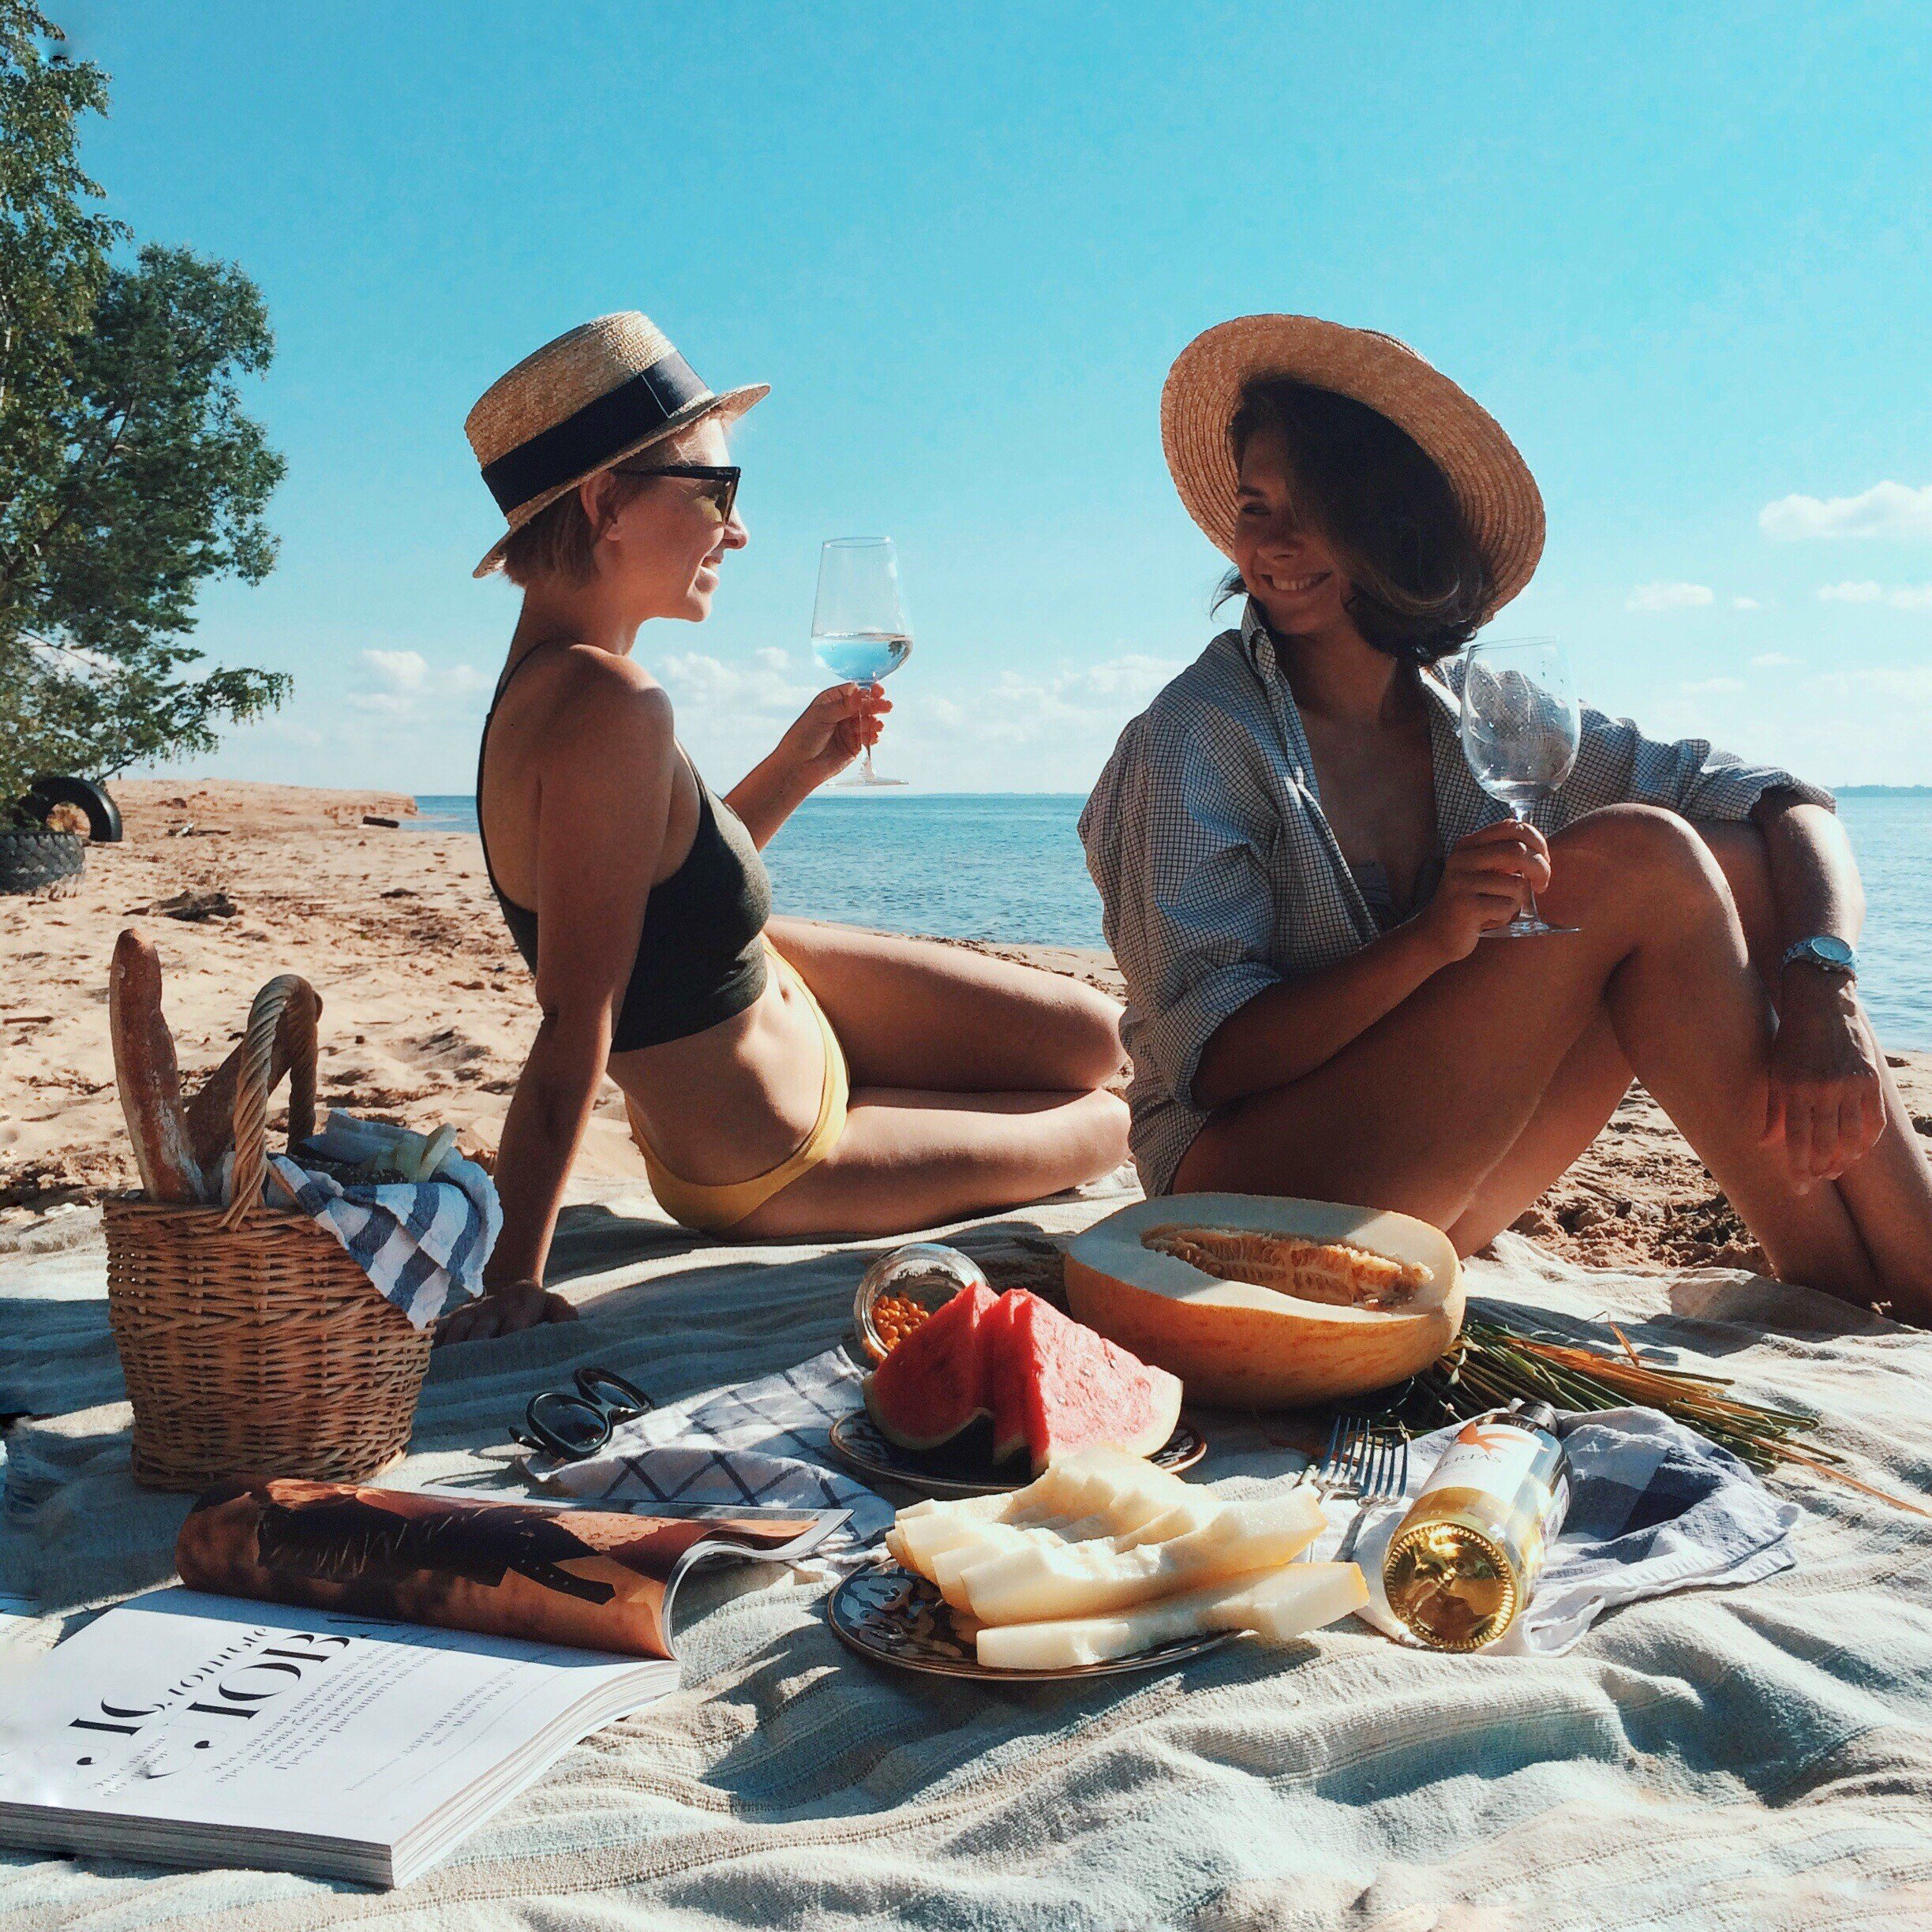 Style + Design sky outdoor person image people vacation Beach sand Sea travel day